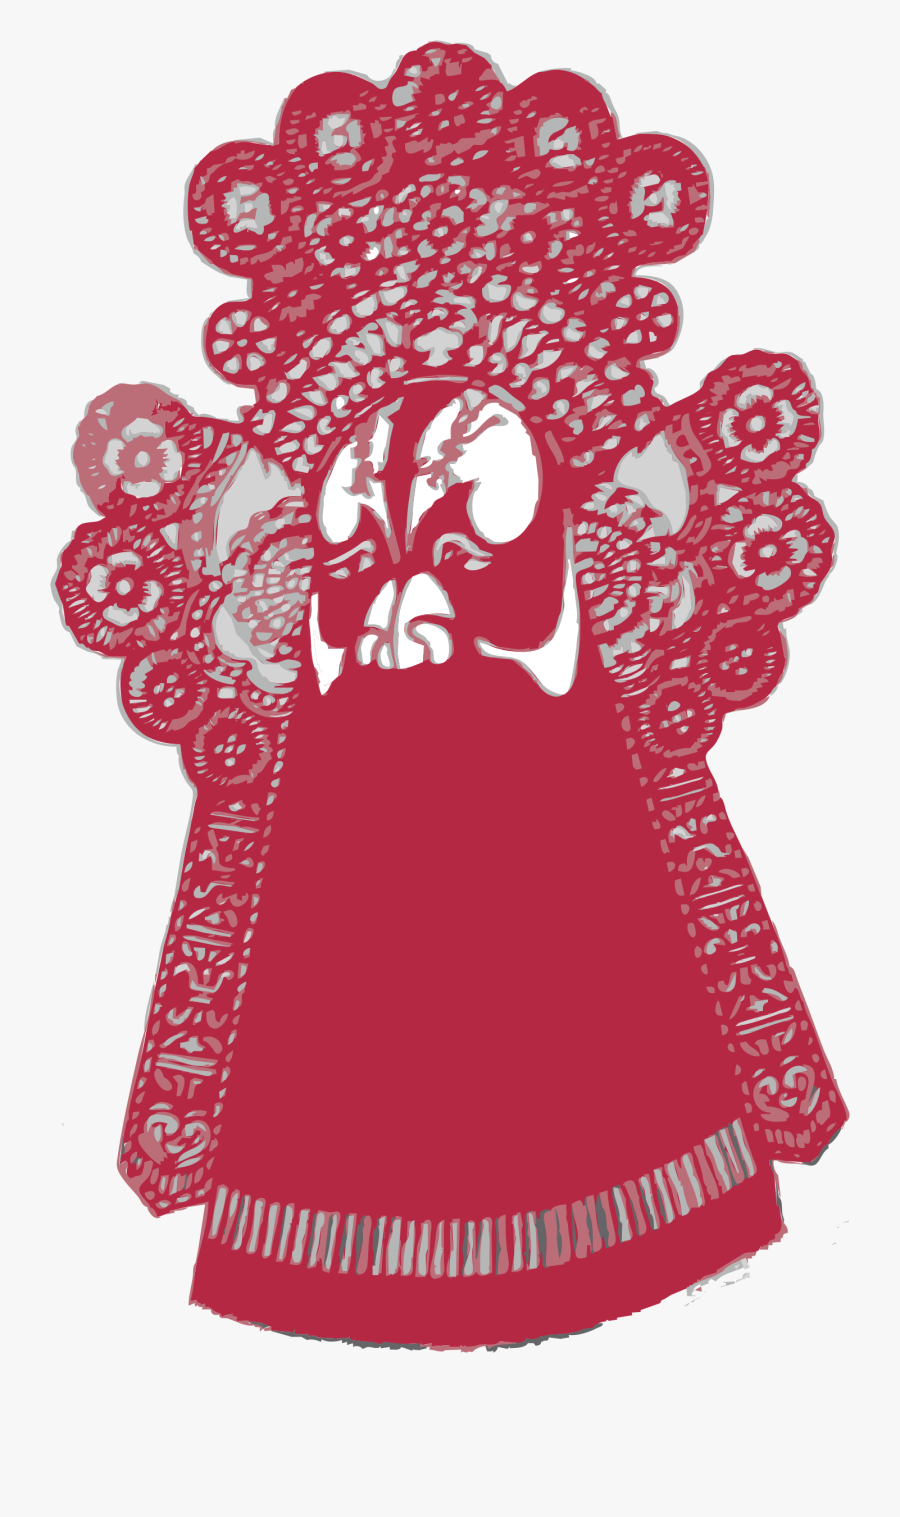 Chinese Paper Cut Style Face Mask Cleaned - Chinese Paper Cutting Png, Transparent Clipart